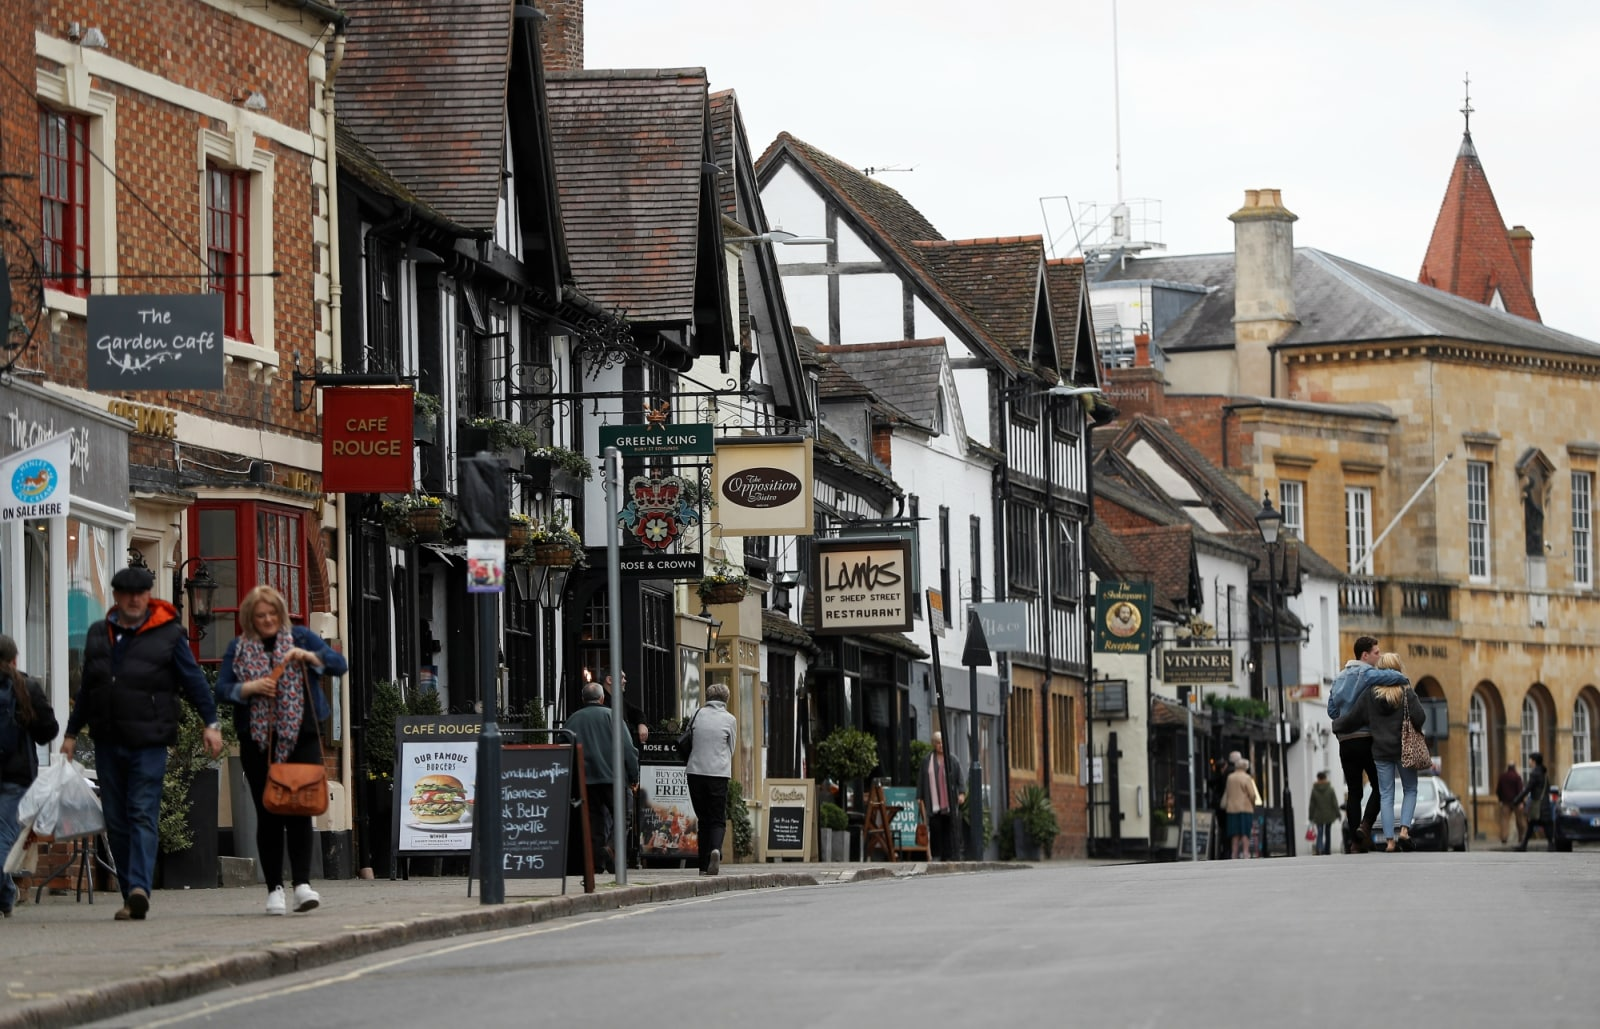 Visitors and shoppers walk along Sheep street in the centre of Stratford-upon-Avon, Britain, March 22, 2019. REUTERS/Peter Nicholls/Files